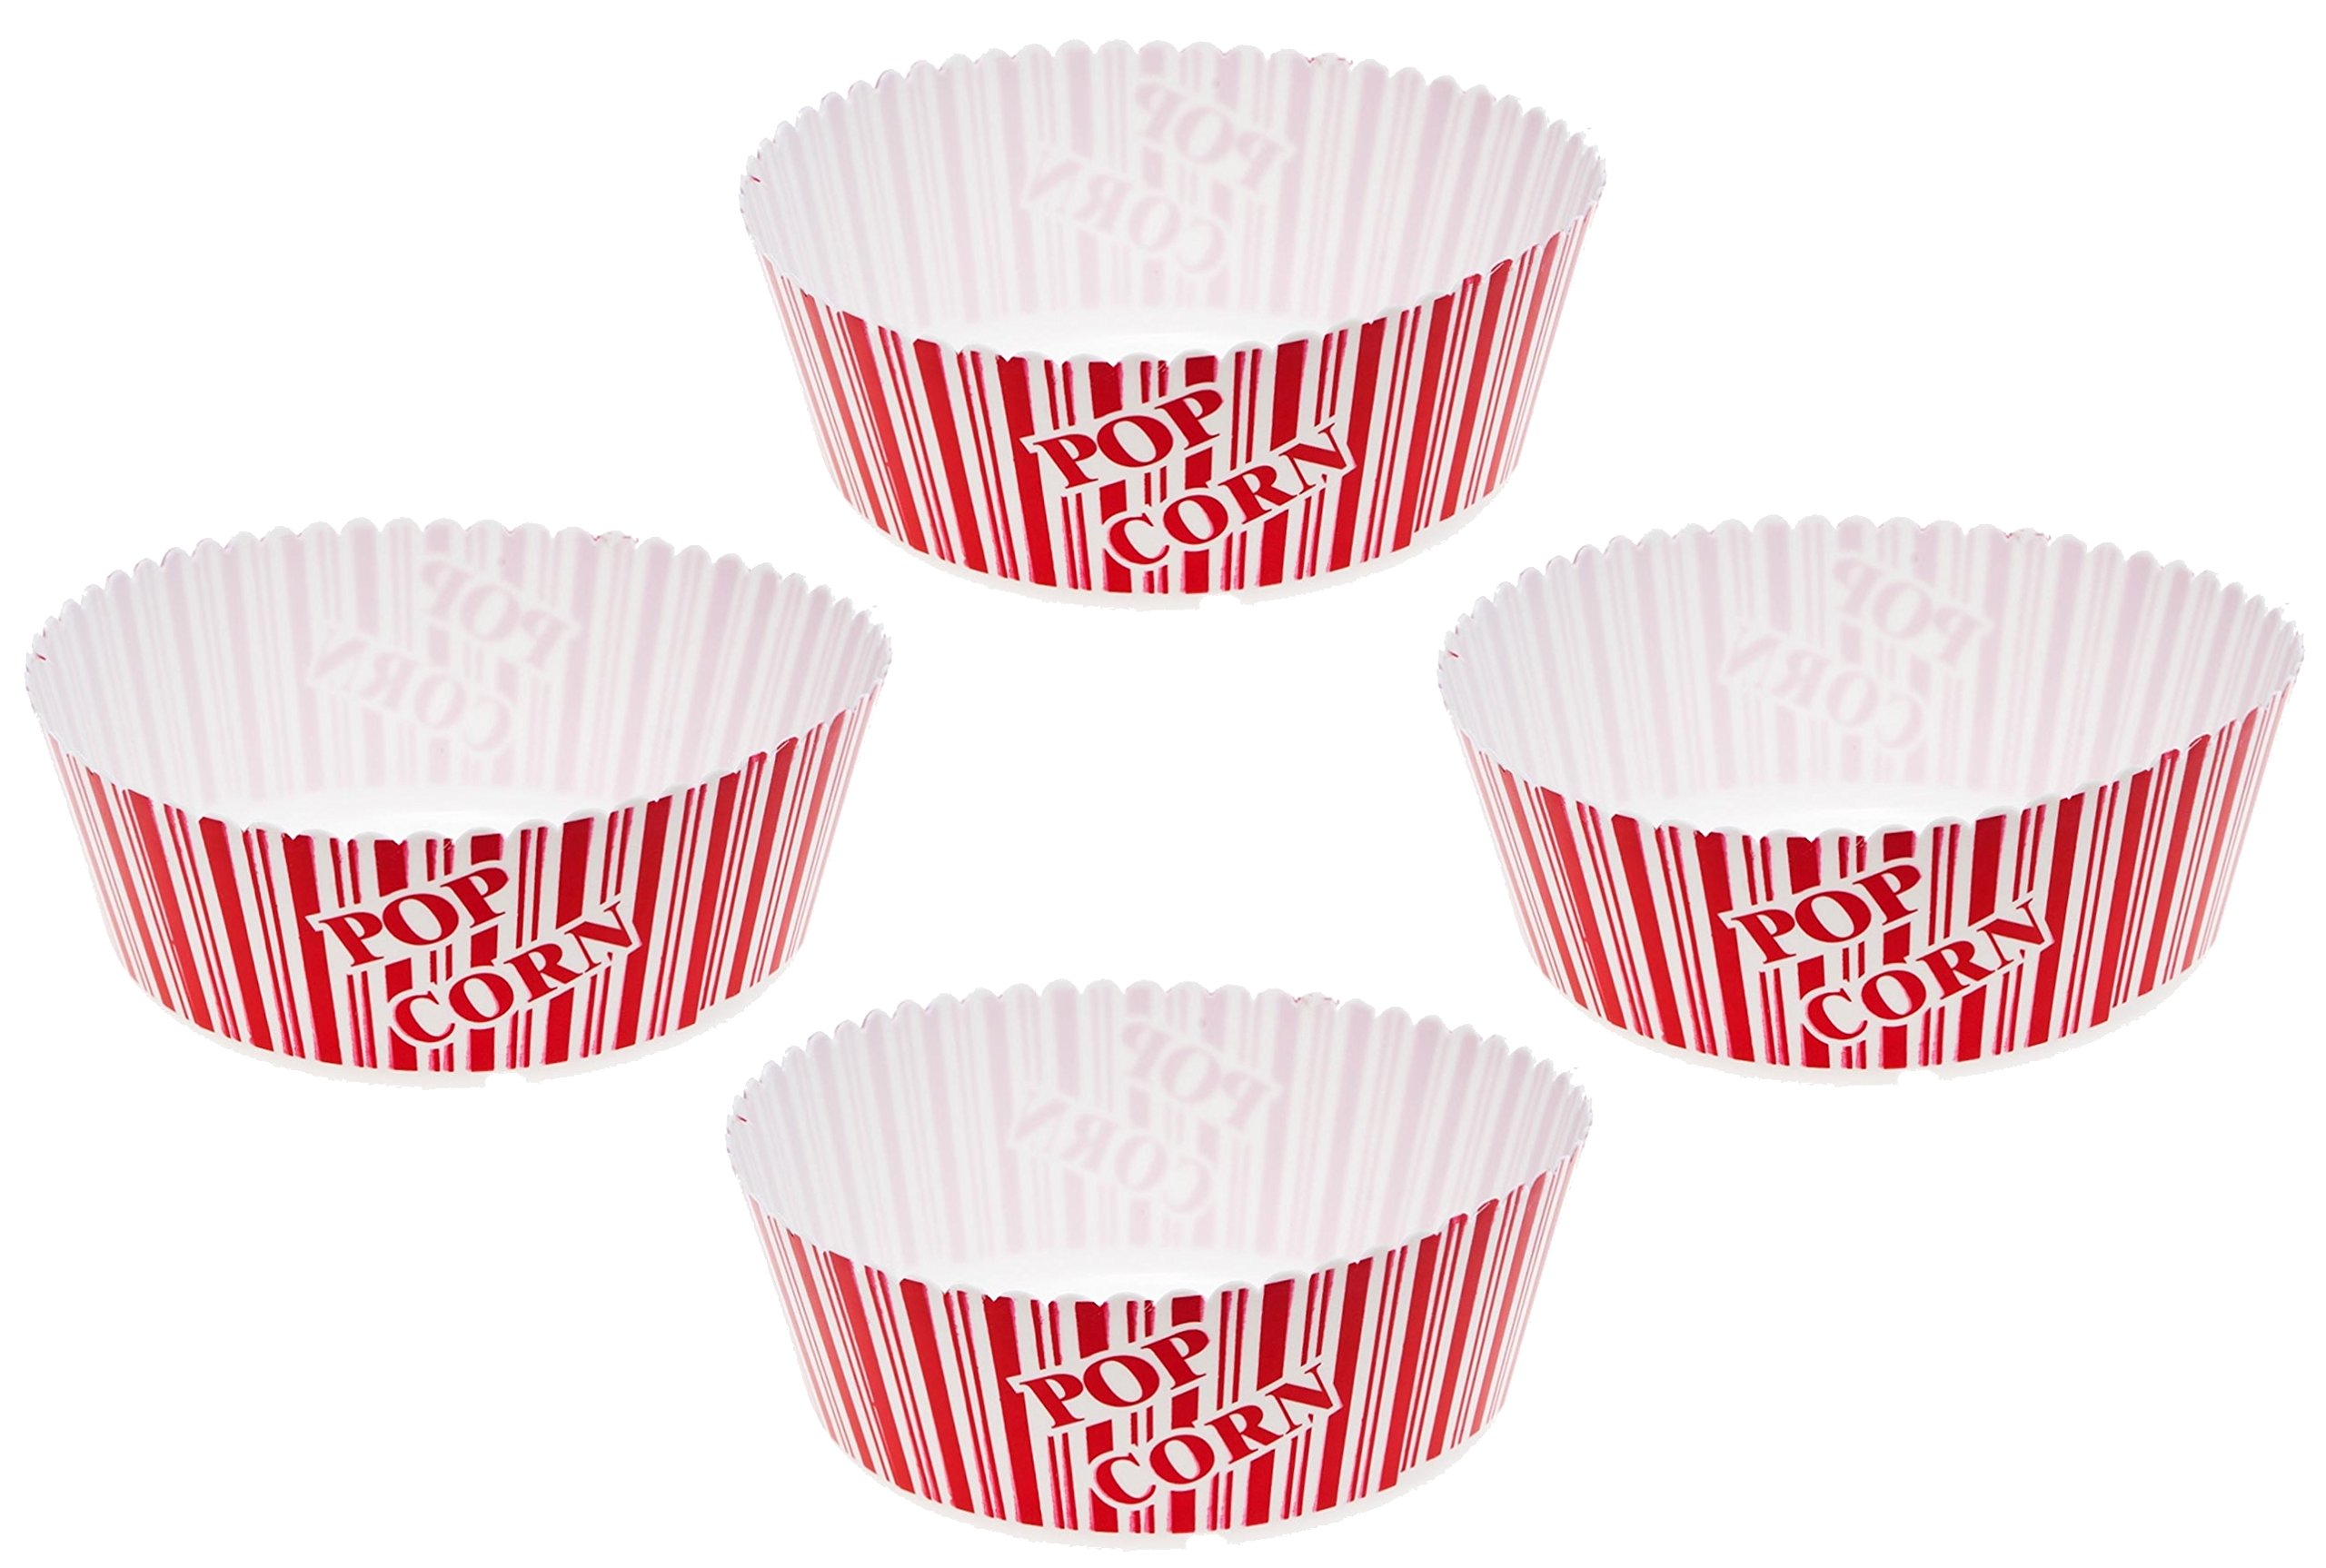 Cinima Style Plastic Theater Popcorn Bowl, Reusable, Large (Pack of 4)